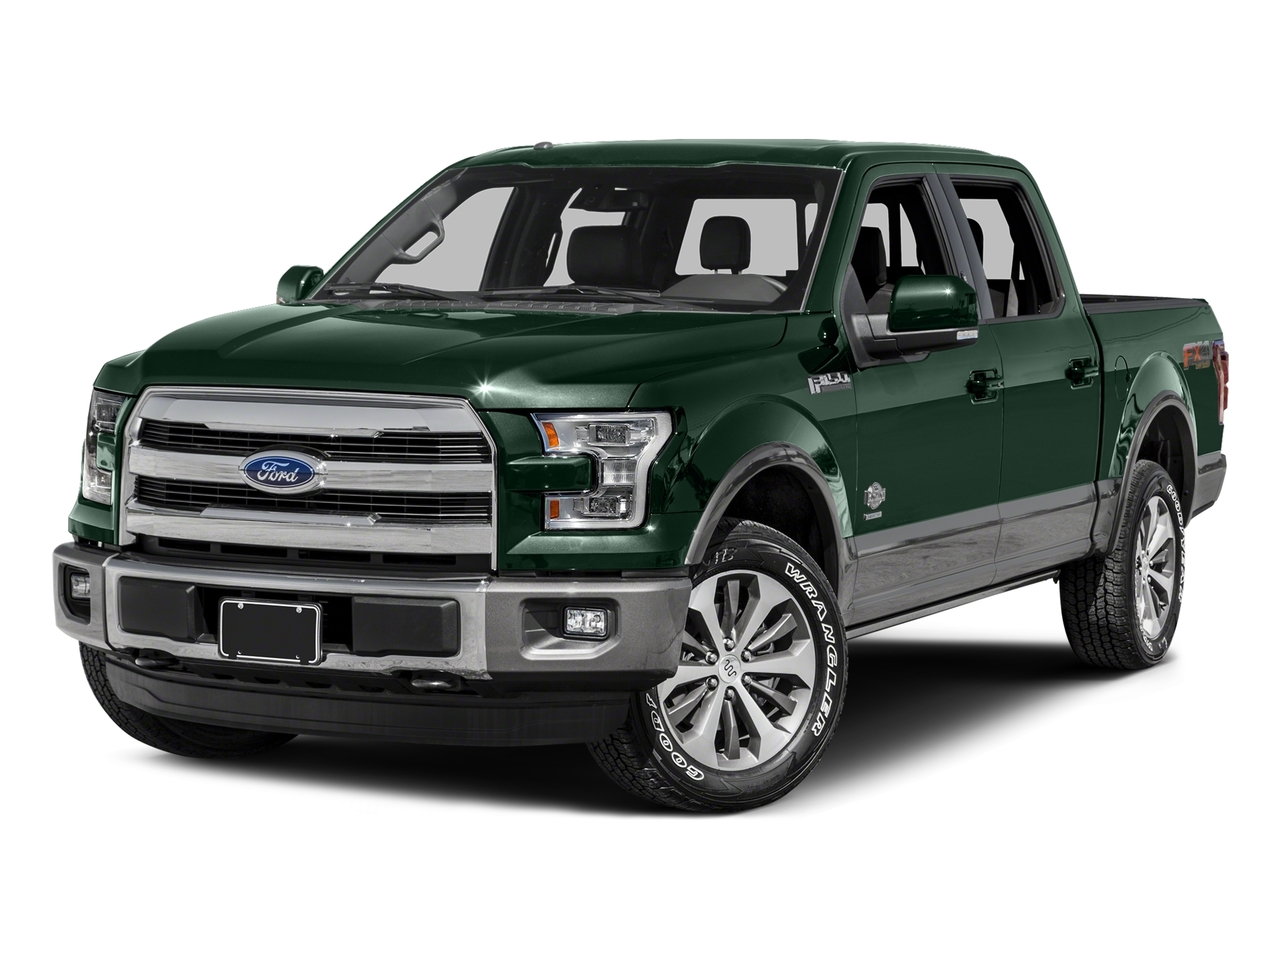 2015 Ford F-150 KING RANCH Crew Cab Pickup Slide